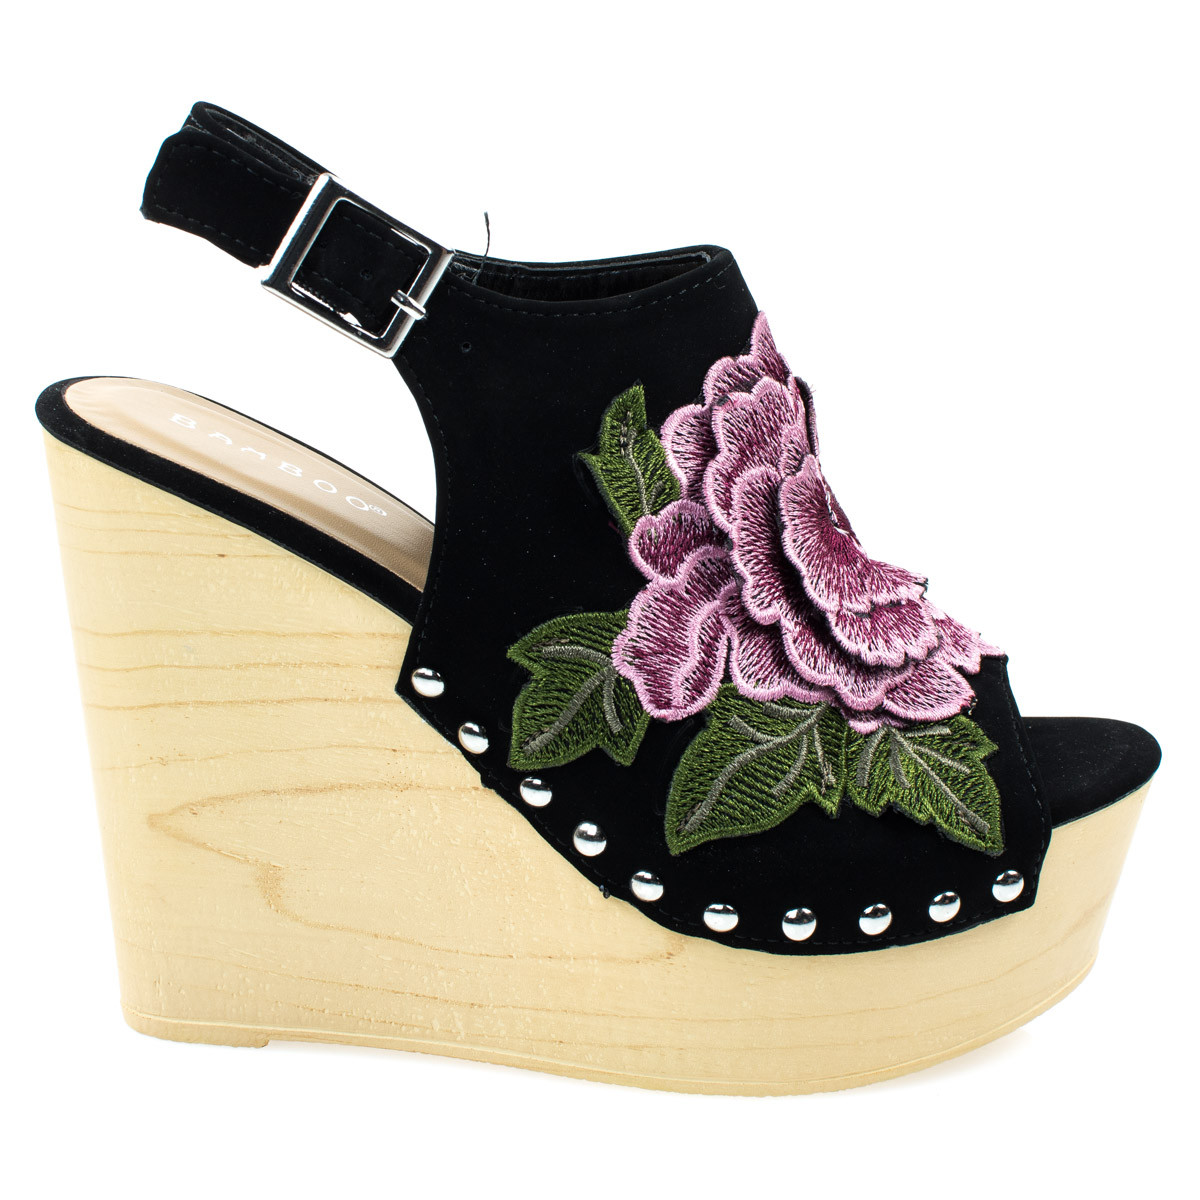 Woobery17 by Bamboo, Black Large Floral Patch On Wooden Platform Wedge Sandal, Metal Bolted Detail.